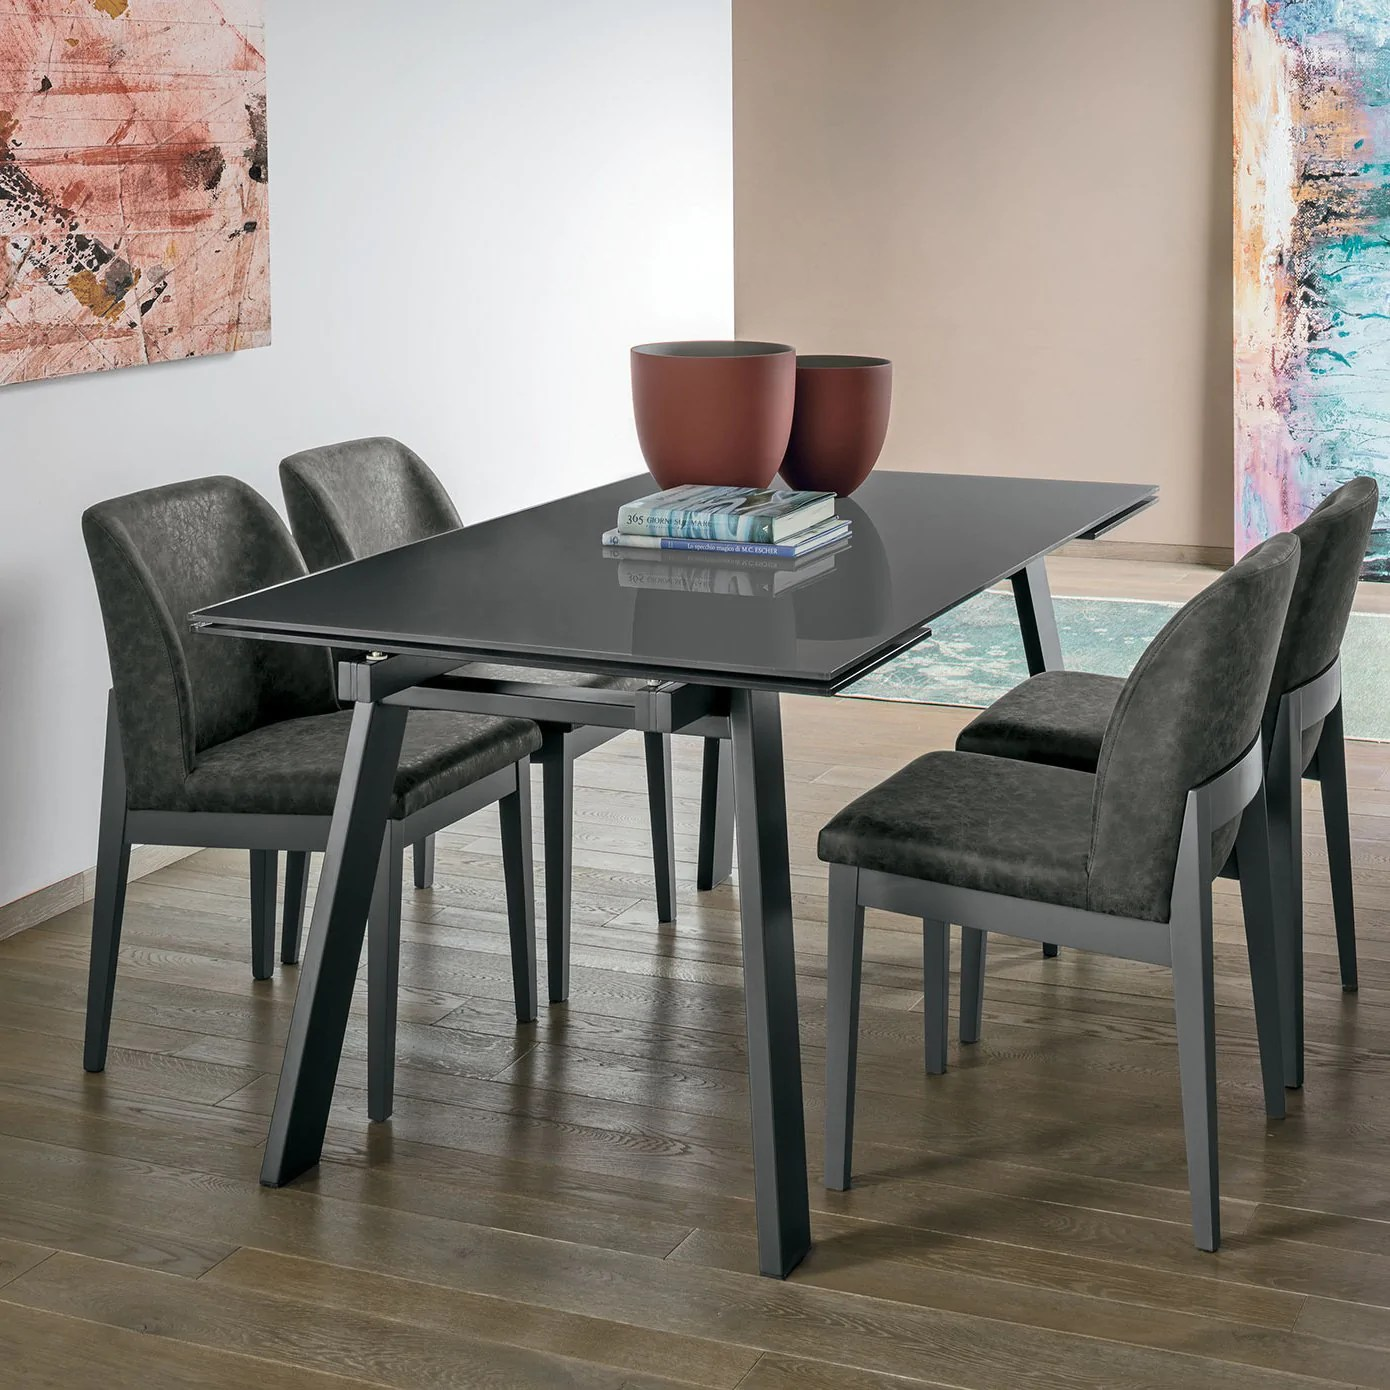 Giove 160 Dining Table Target Point Dining Room Furniture